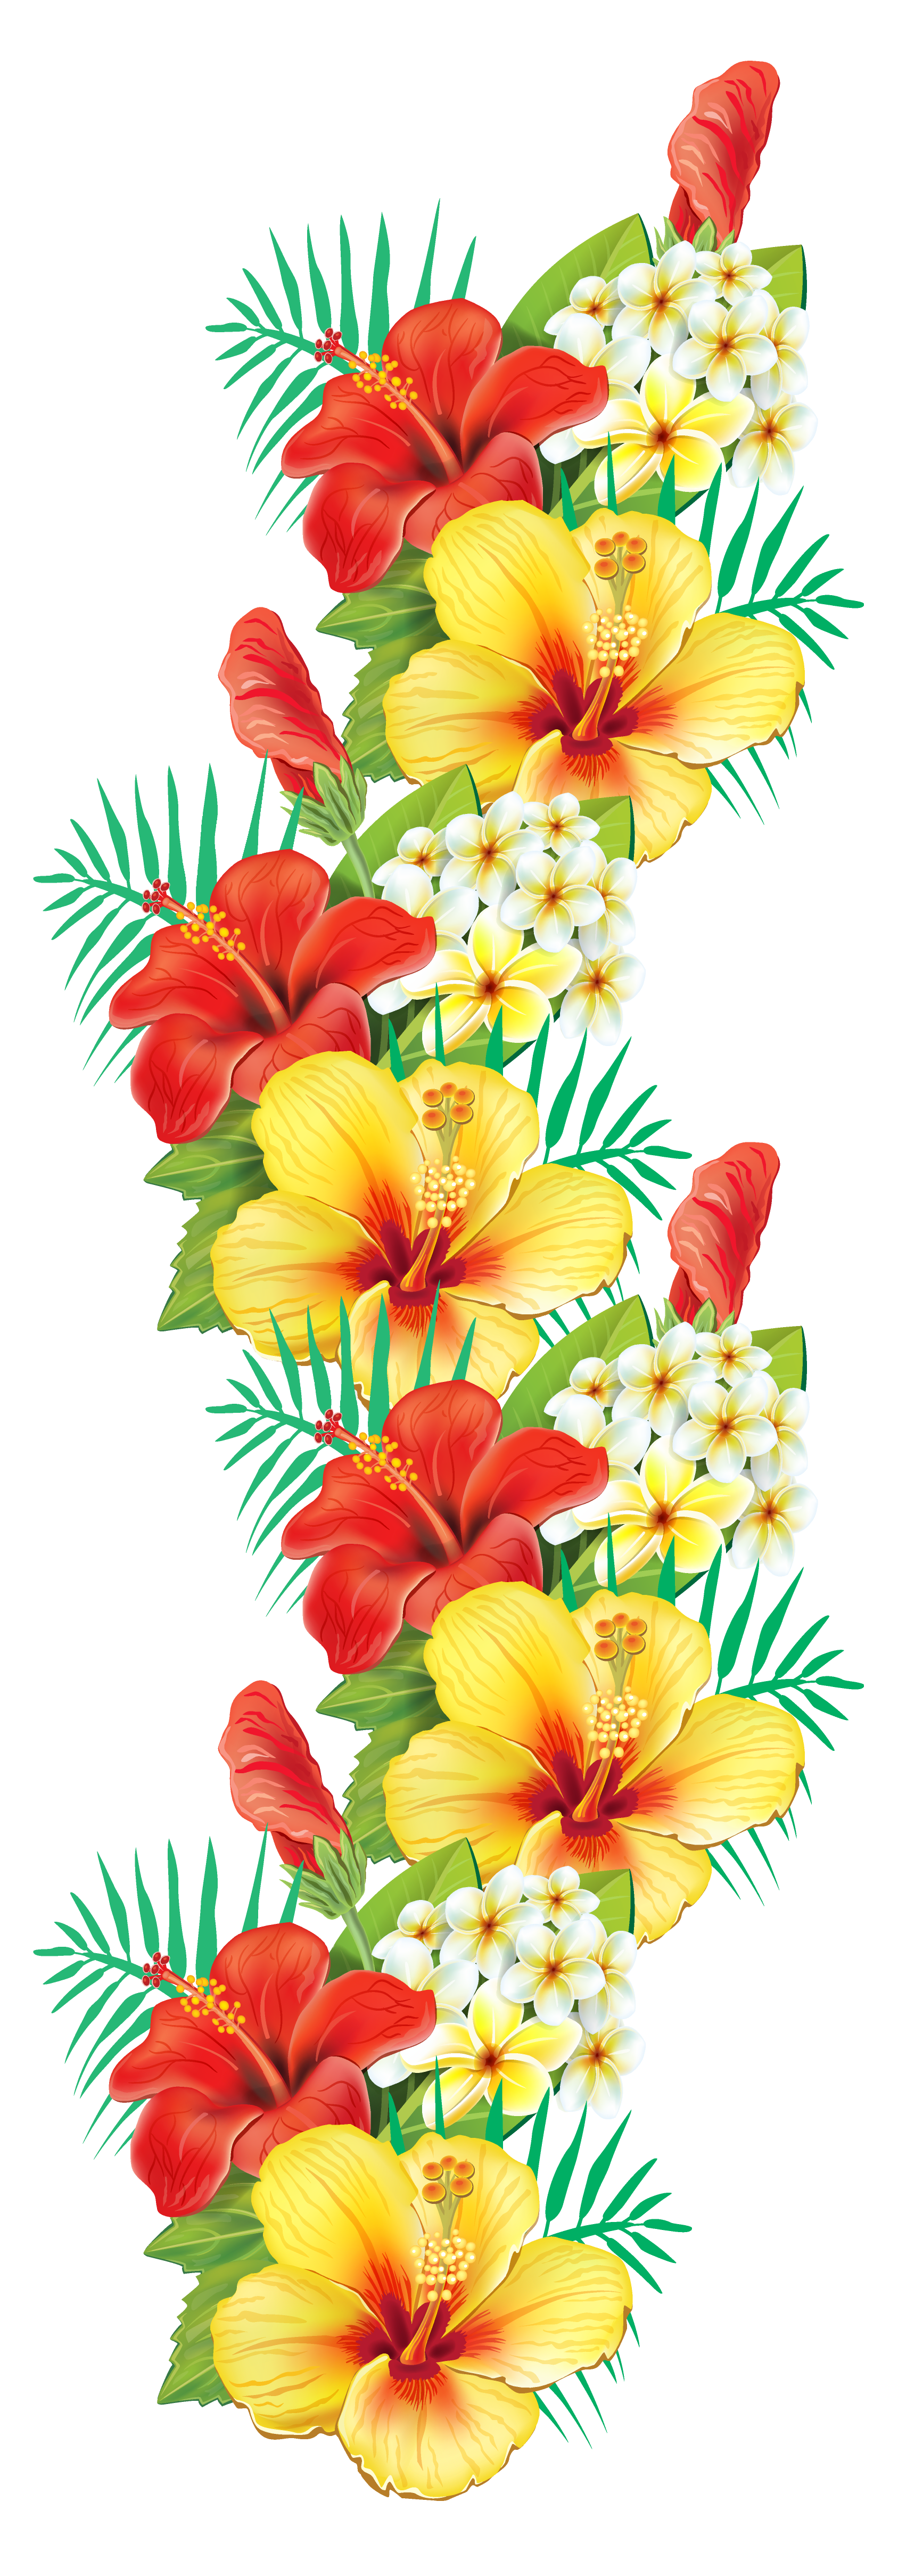 Adult male exotic clipart clipart images gallery for free.